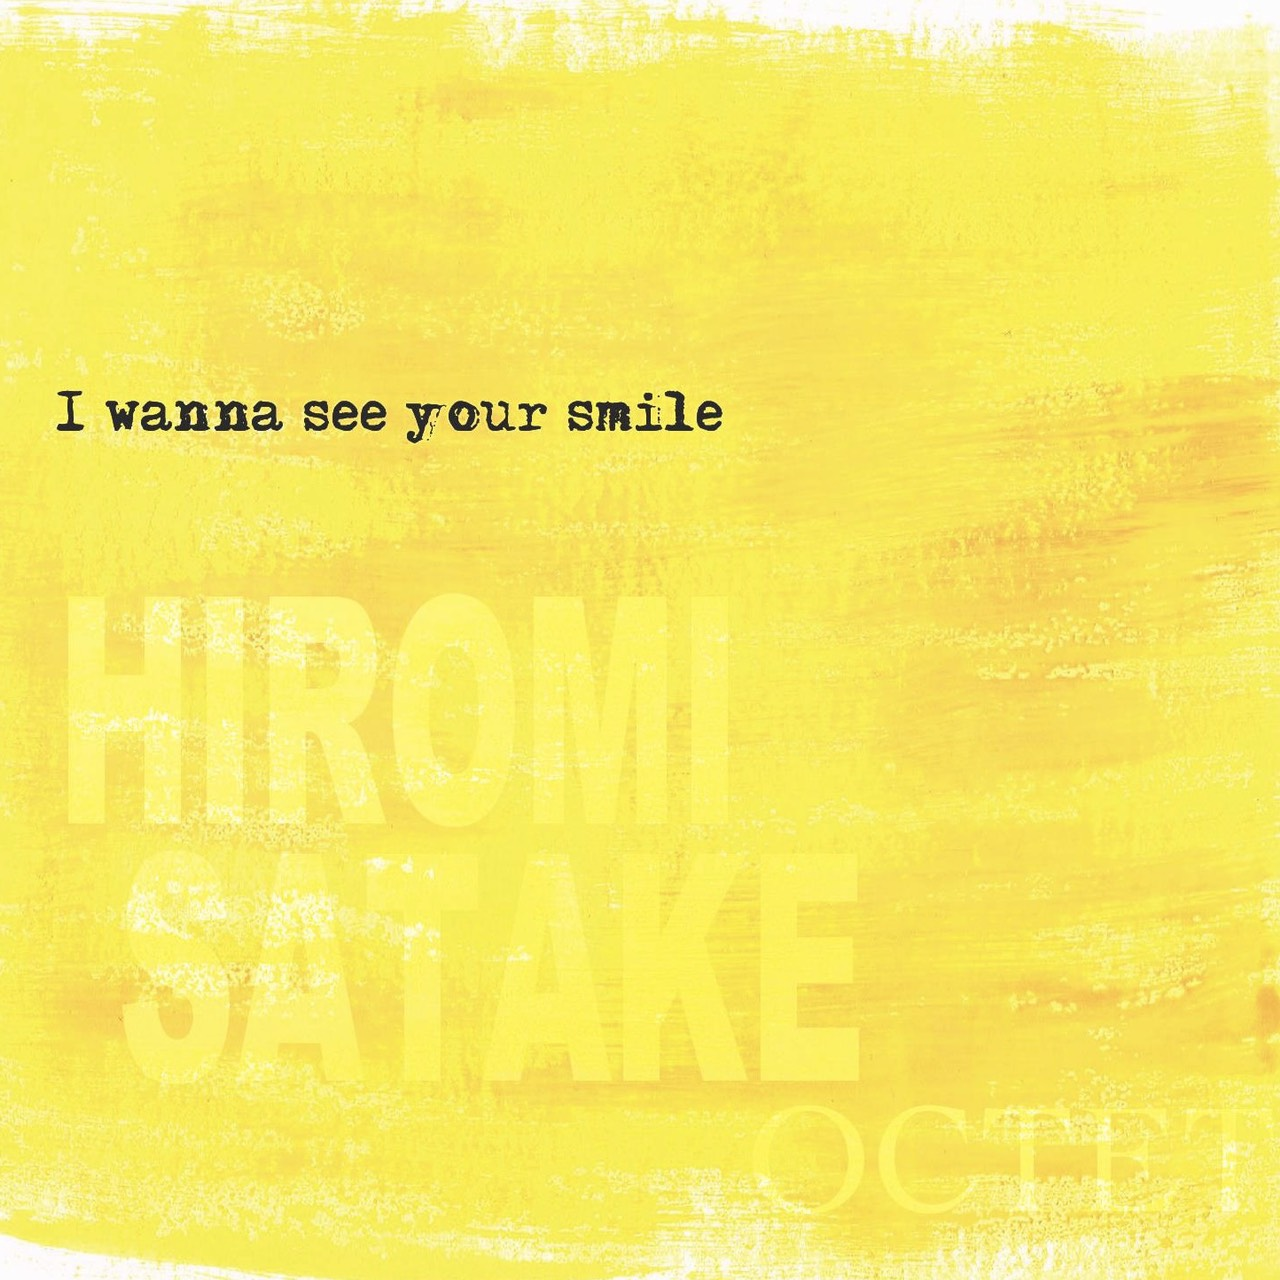 I_wanna_see_your_smile